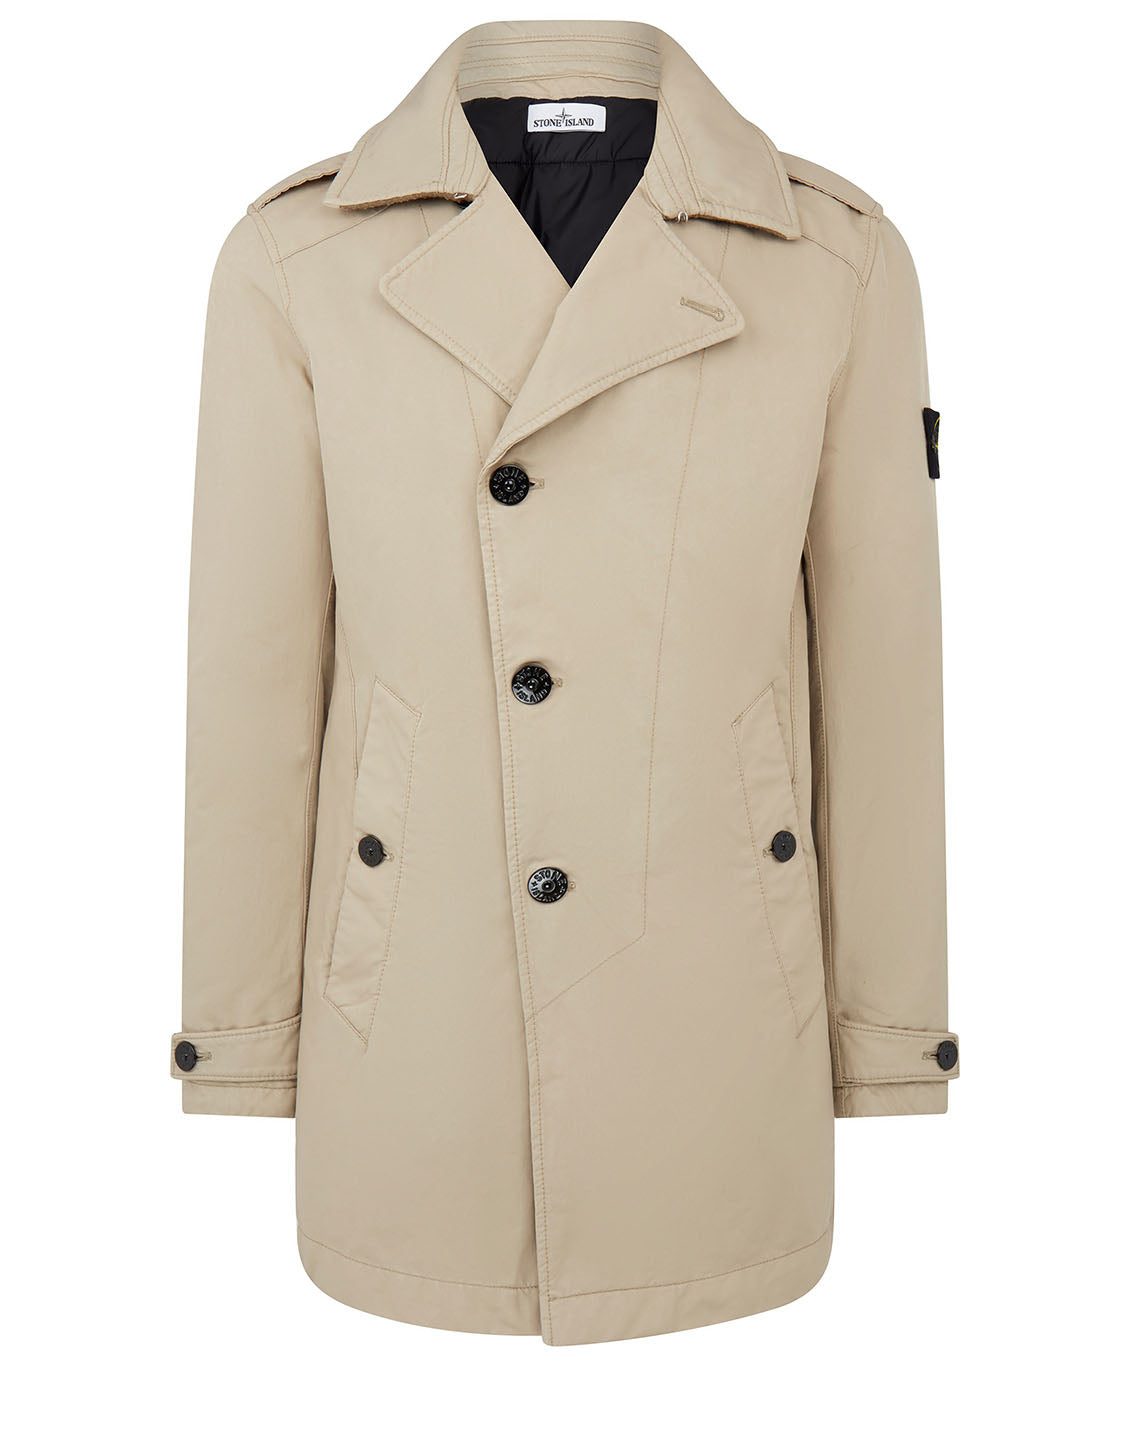 45249 DAVID-TC Short Trench Coat in Sand